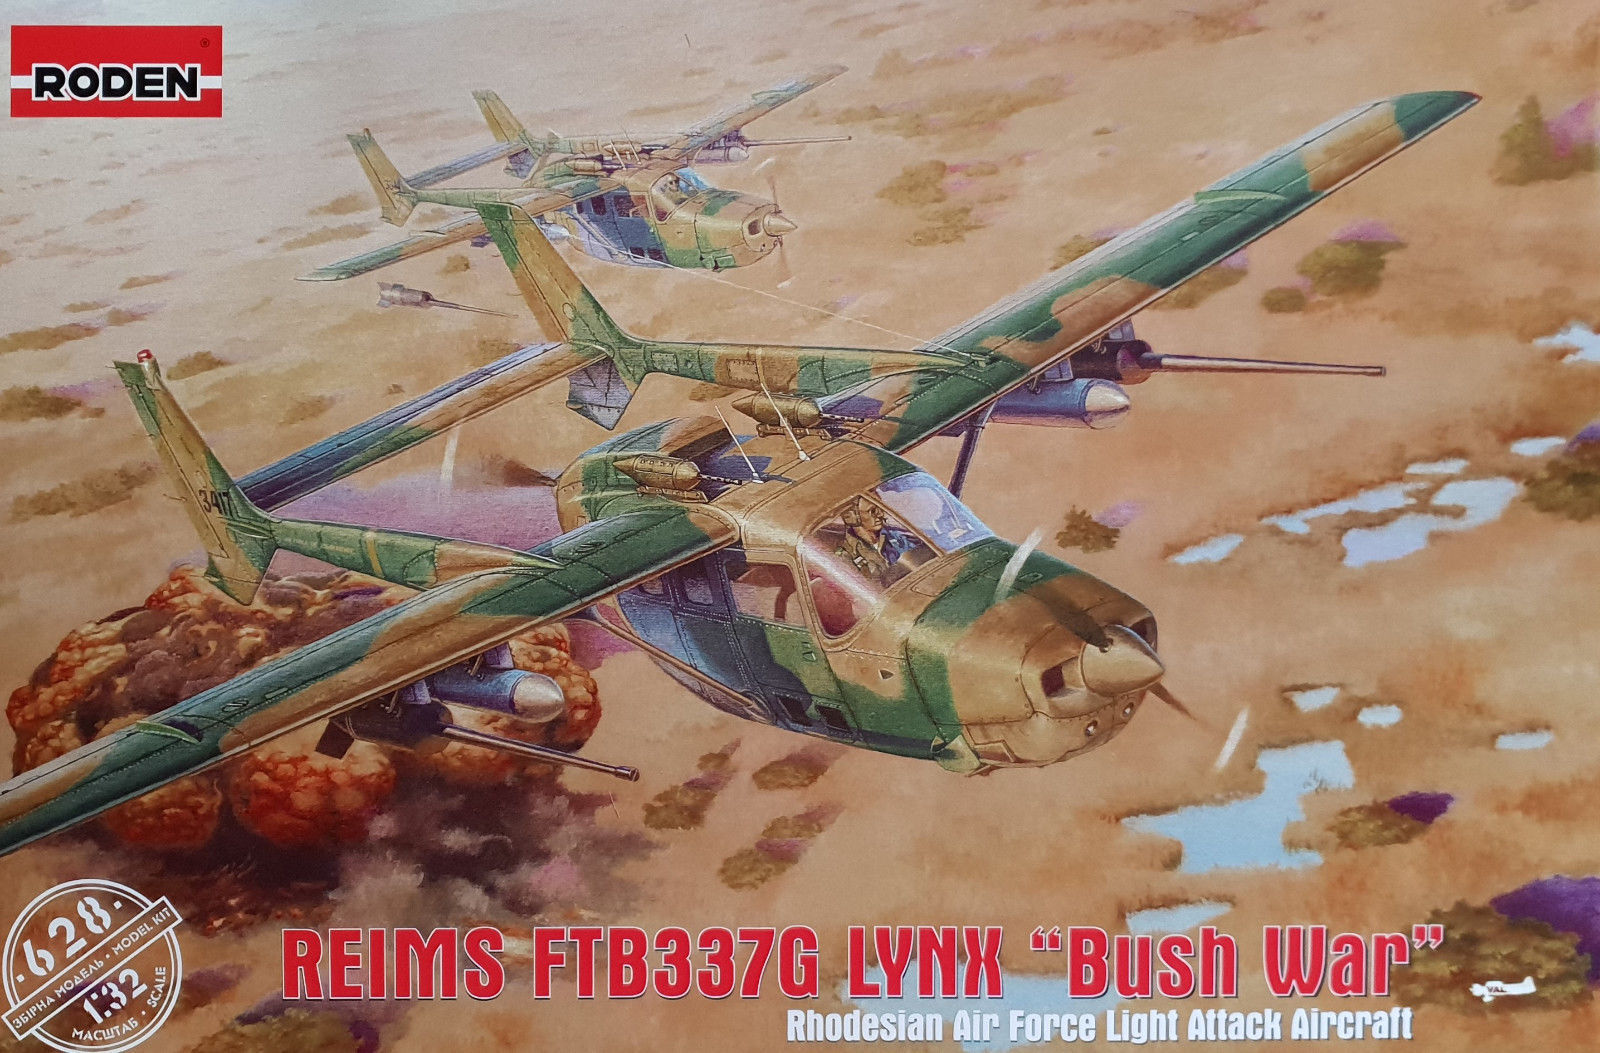 RODEN 628 Reims FTB337G Lynx  Bush War  in 1 32